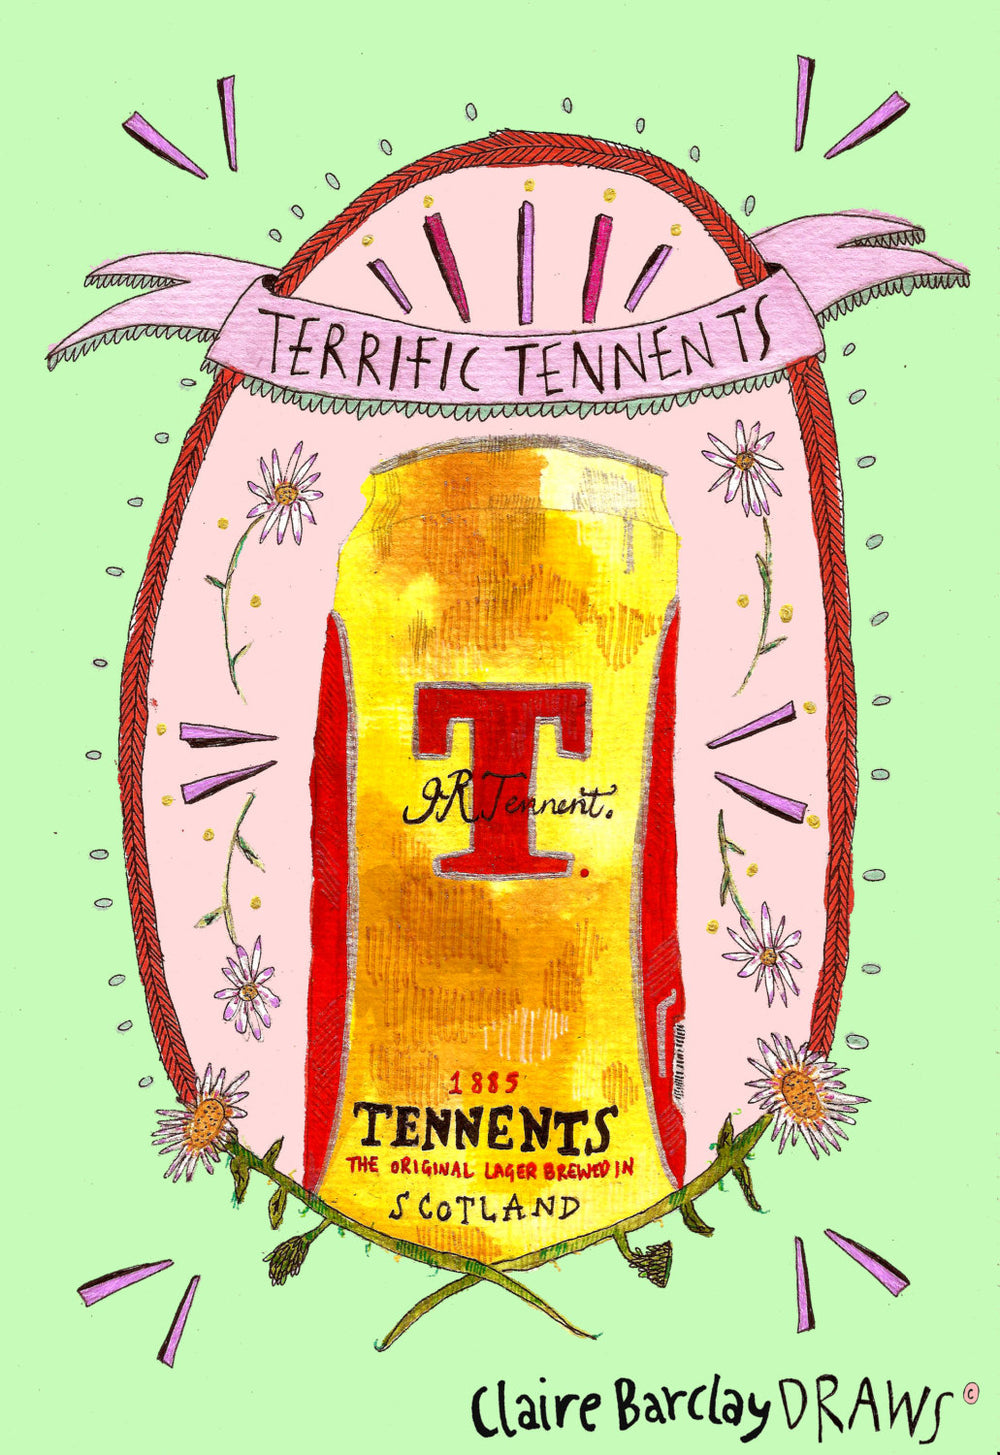 Terrific Tennents Greetings Card